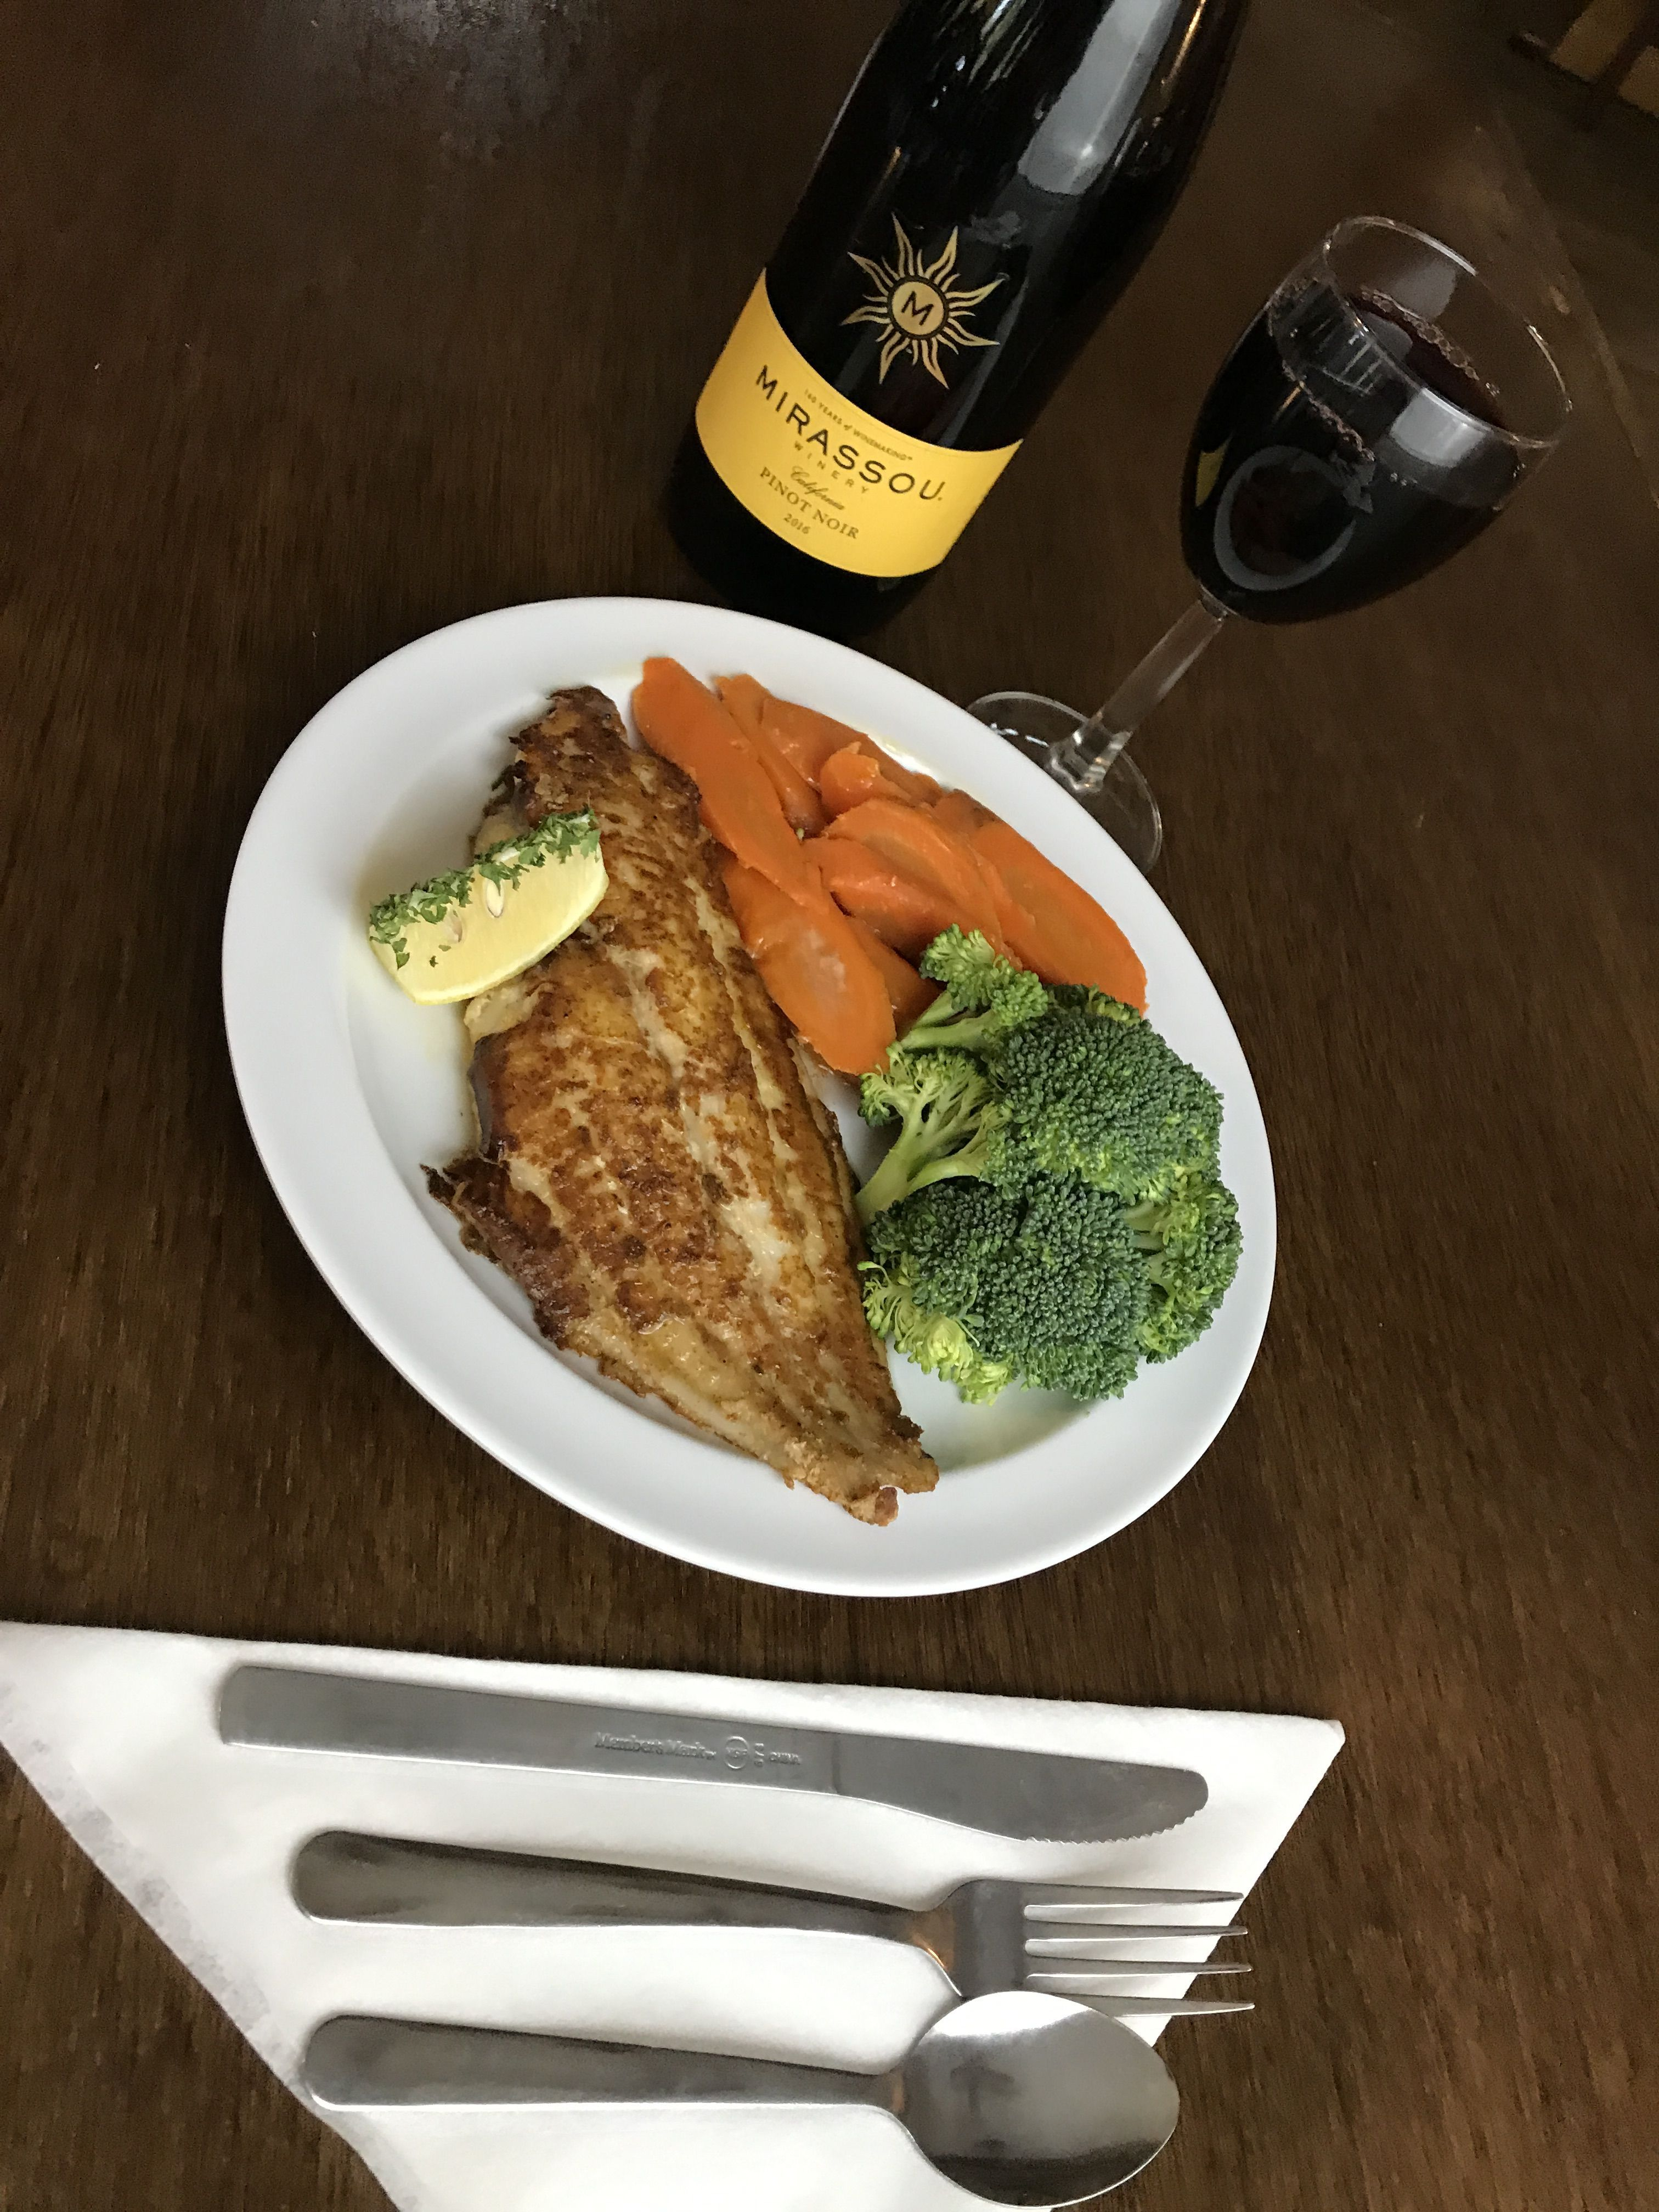 We Have A Mouth Watering Delicious Grilled Fish With Vegetables That S Sure To Delight Your Taste Buds Choose To Grill Either The Cat Mouth Watering Food Eat